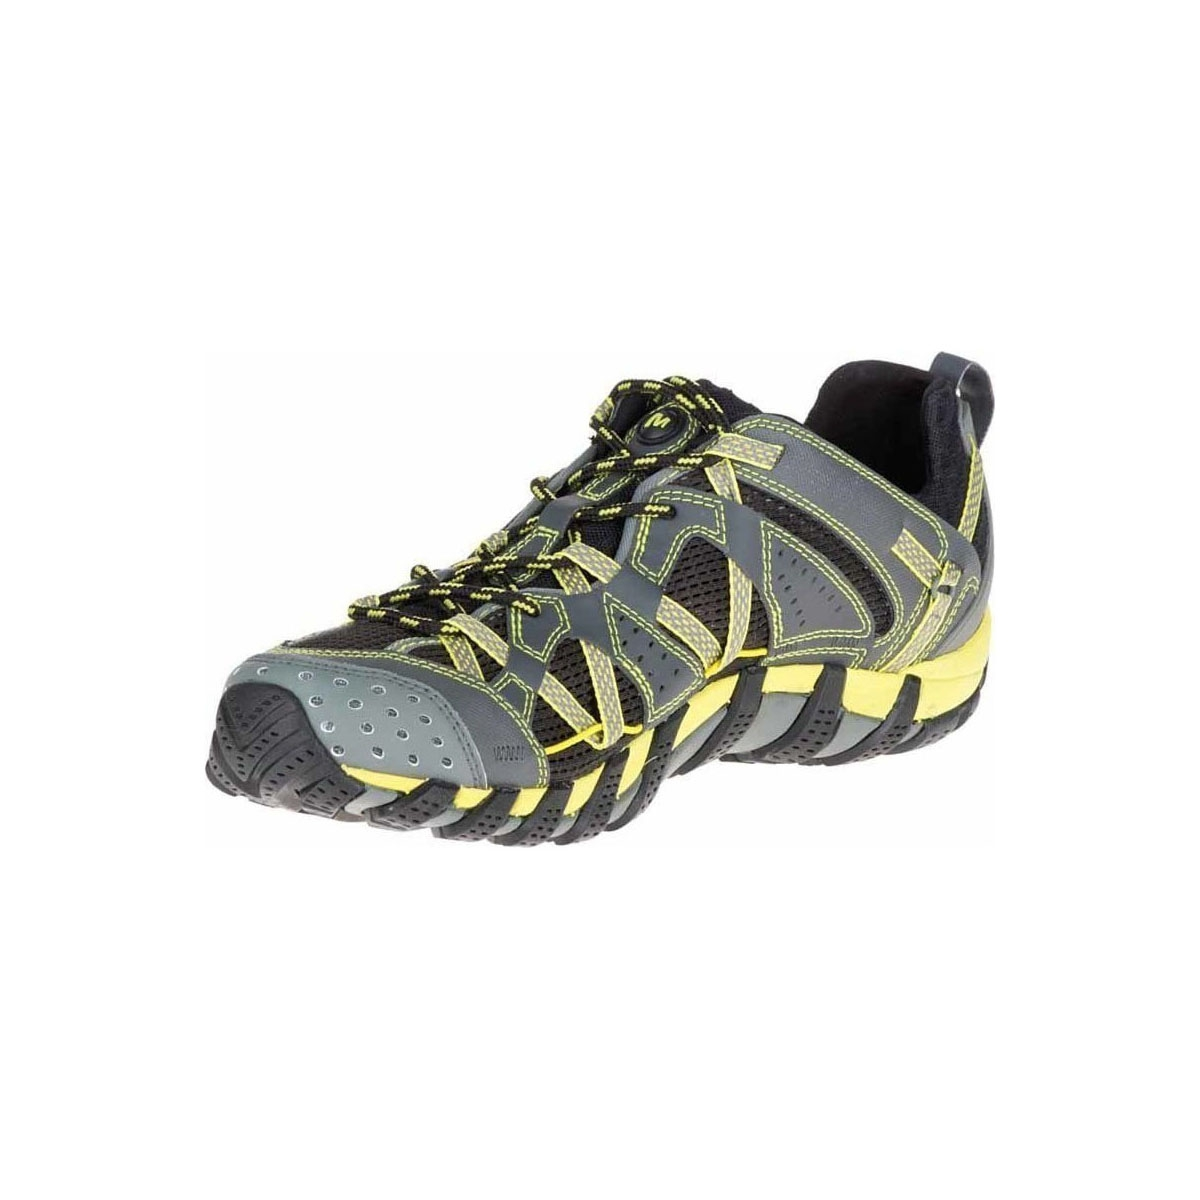 New-Merrell-Waterpro-Maipo-Men-039-s-Medium-Hiking-Trail-Shoes-All-Sizes-NIB thumbnail 16